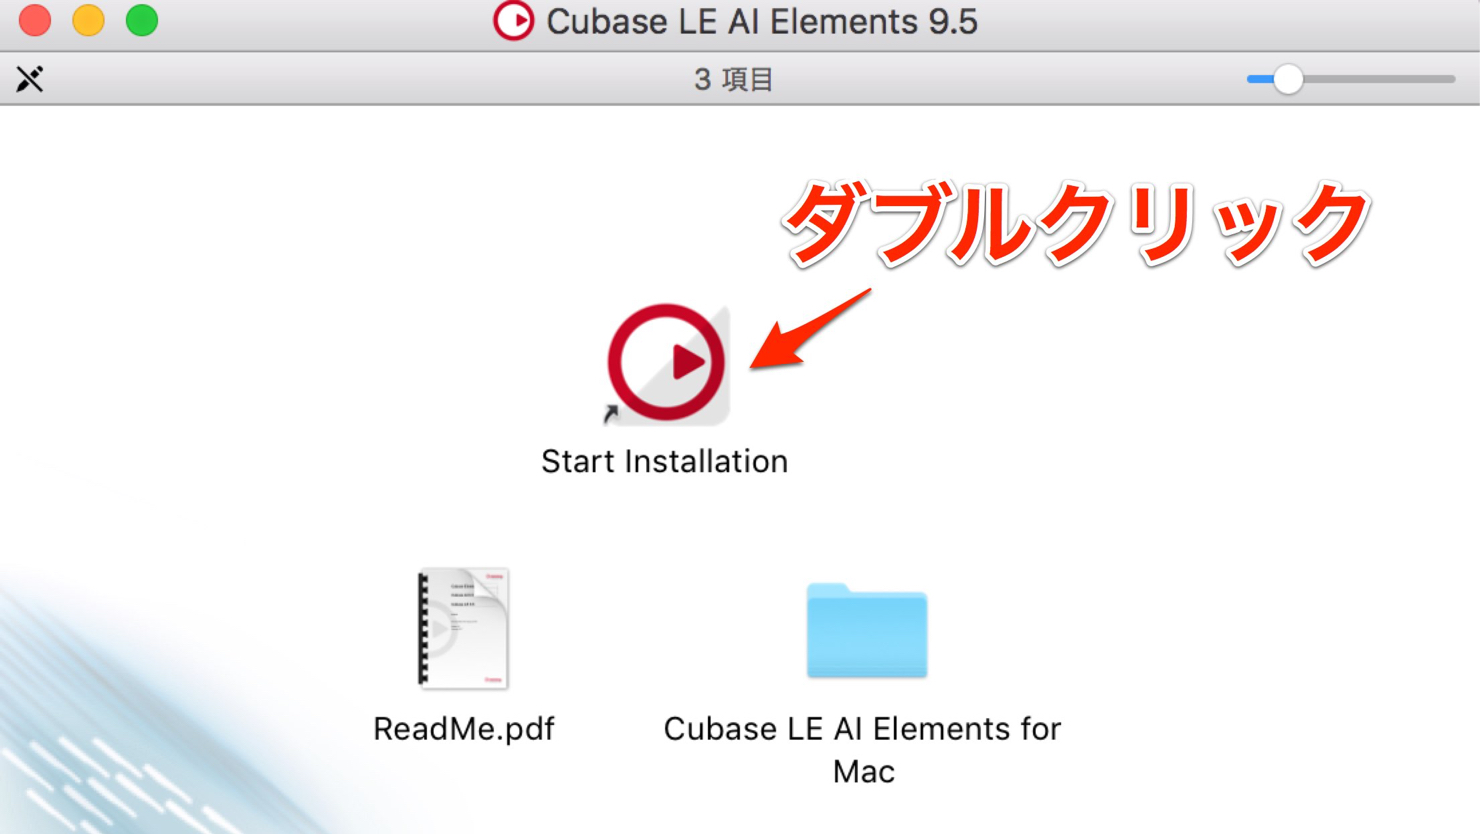 cubase-pro-elements-9-5-trial-10